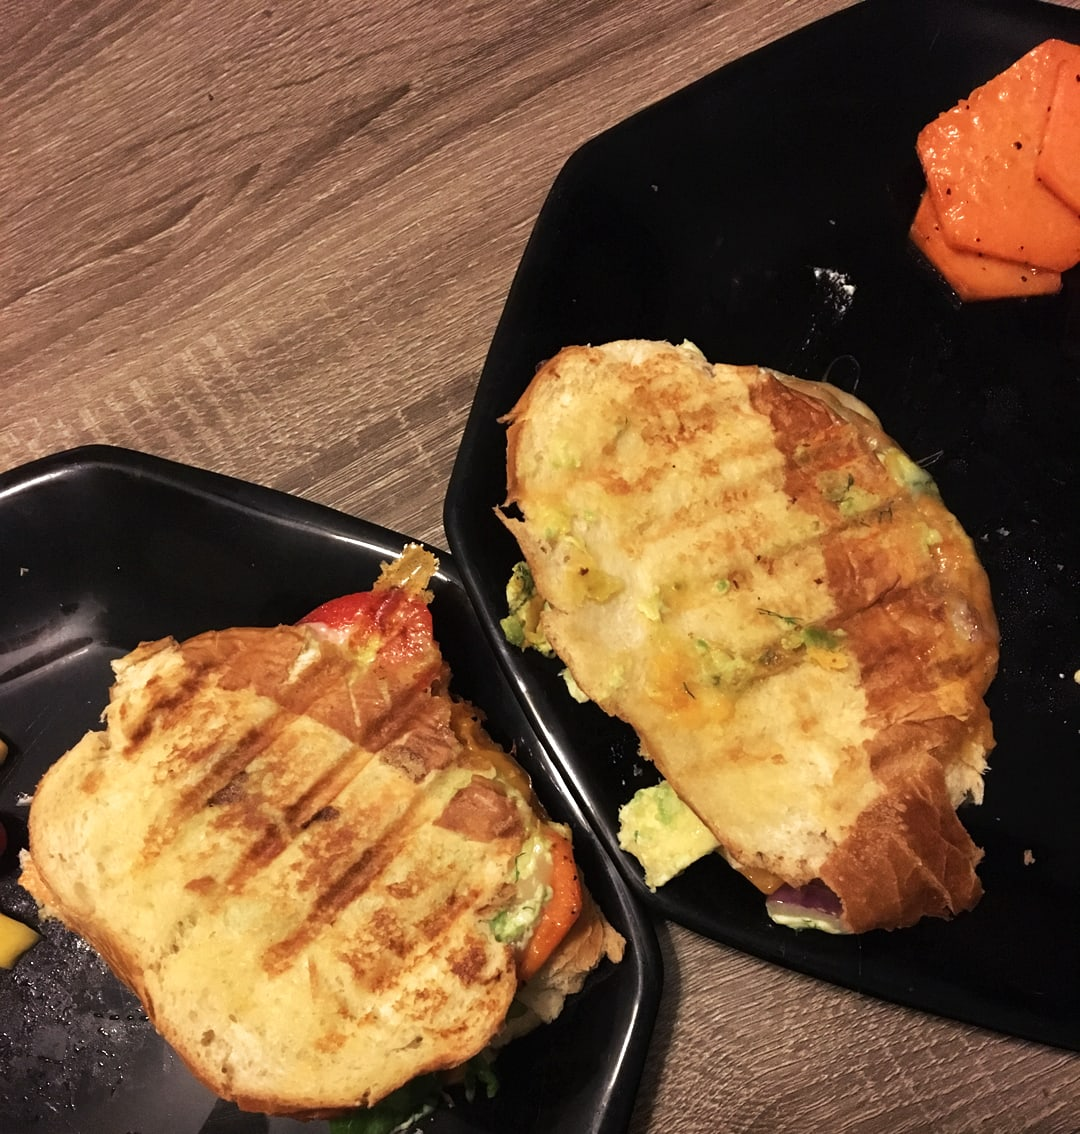 Grill Fight Avocado Paninis